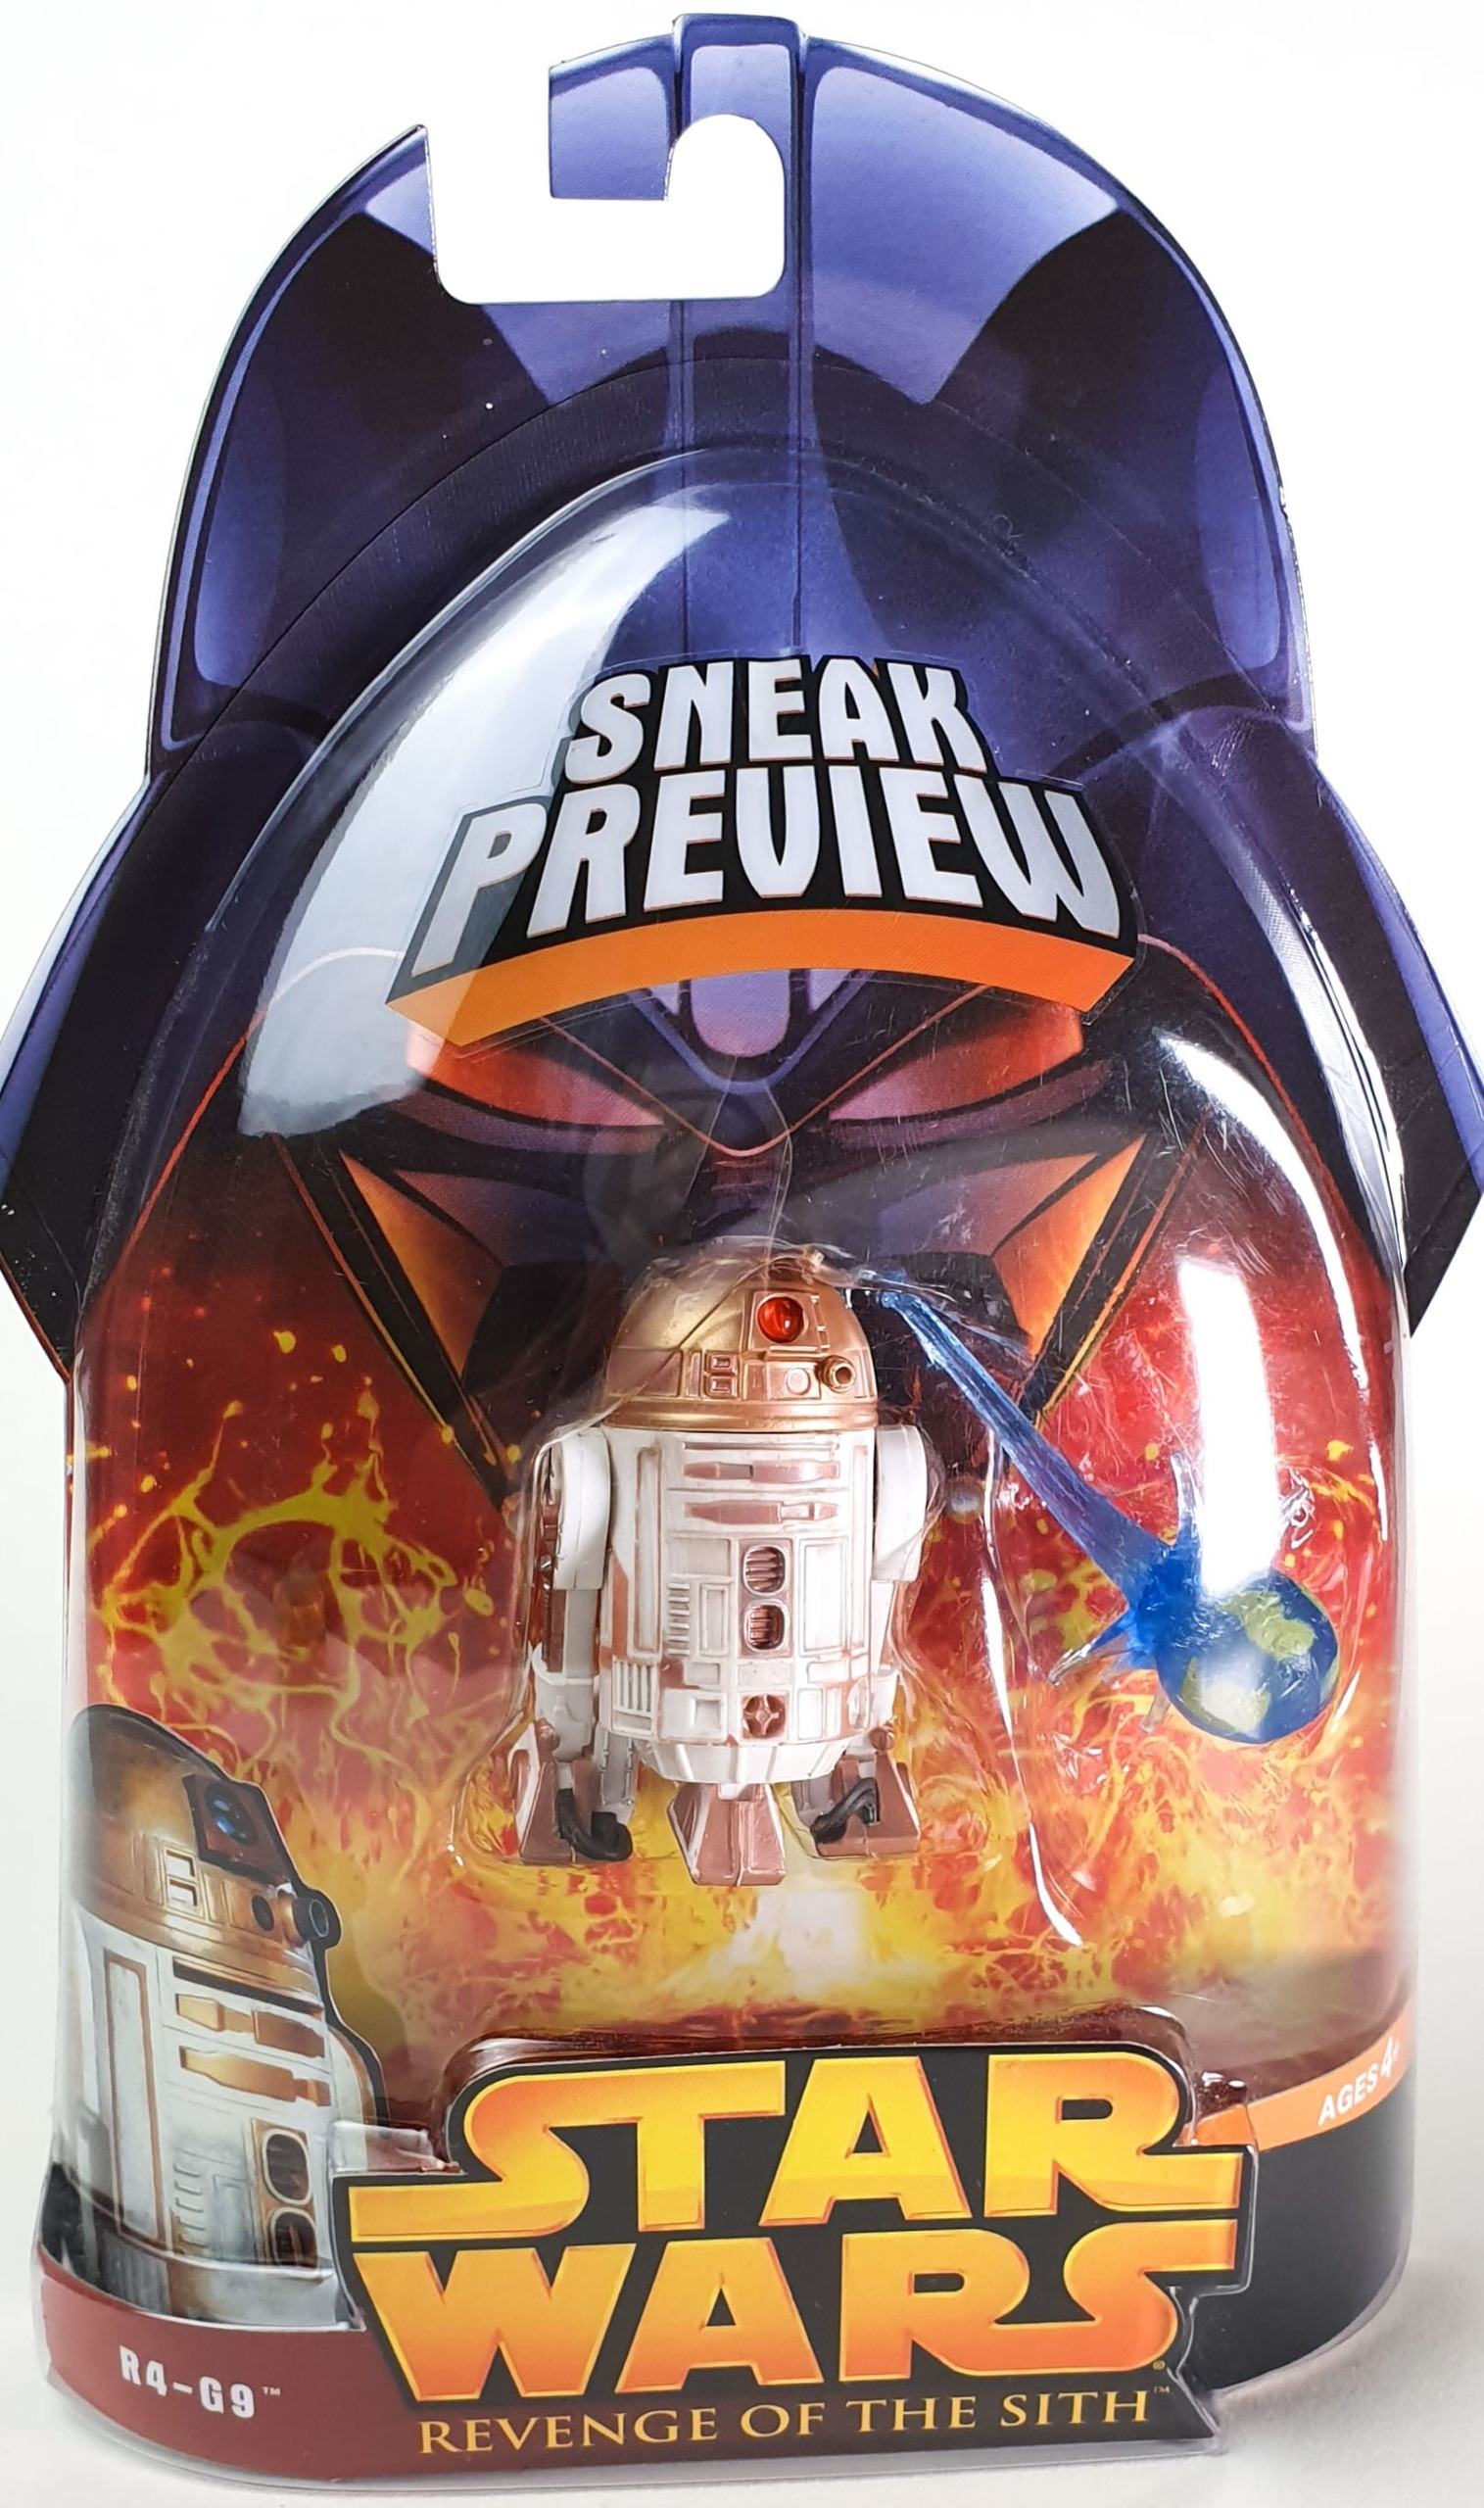 R4 G9 Star Wars Episode Iii Revenge Of The Sith Toy Line Hasbro 2005 Toy Nerds